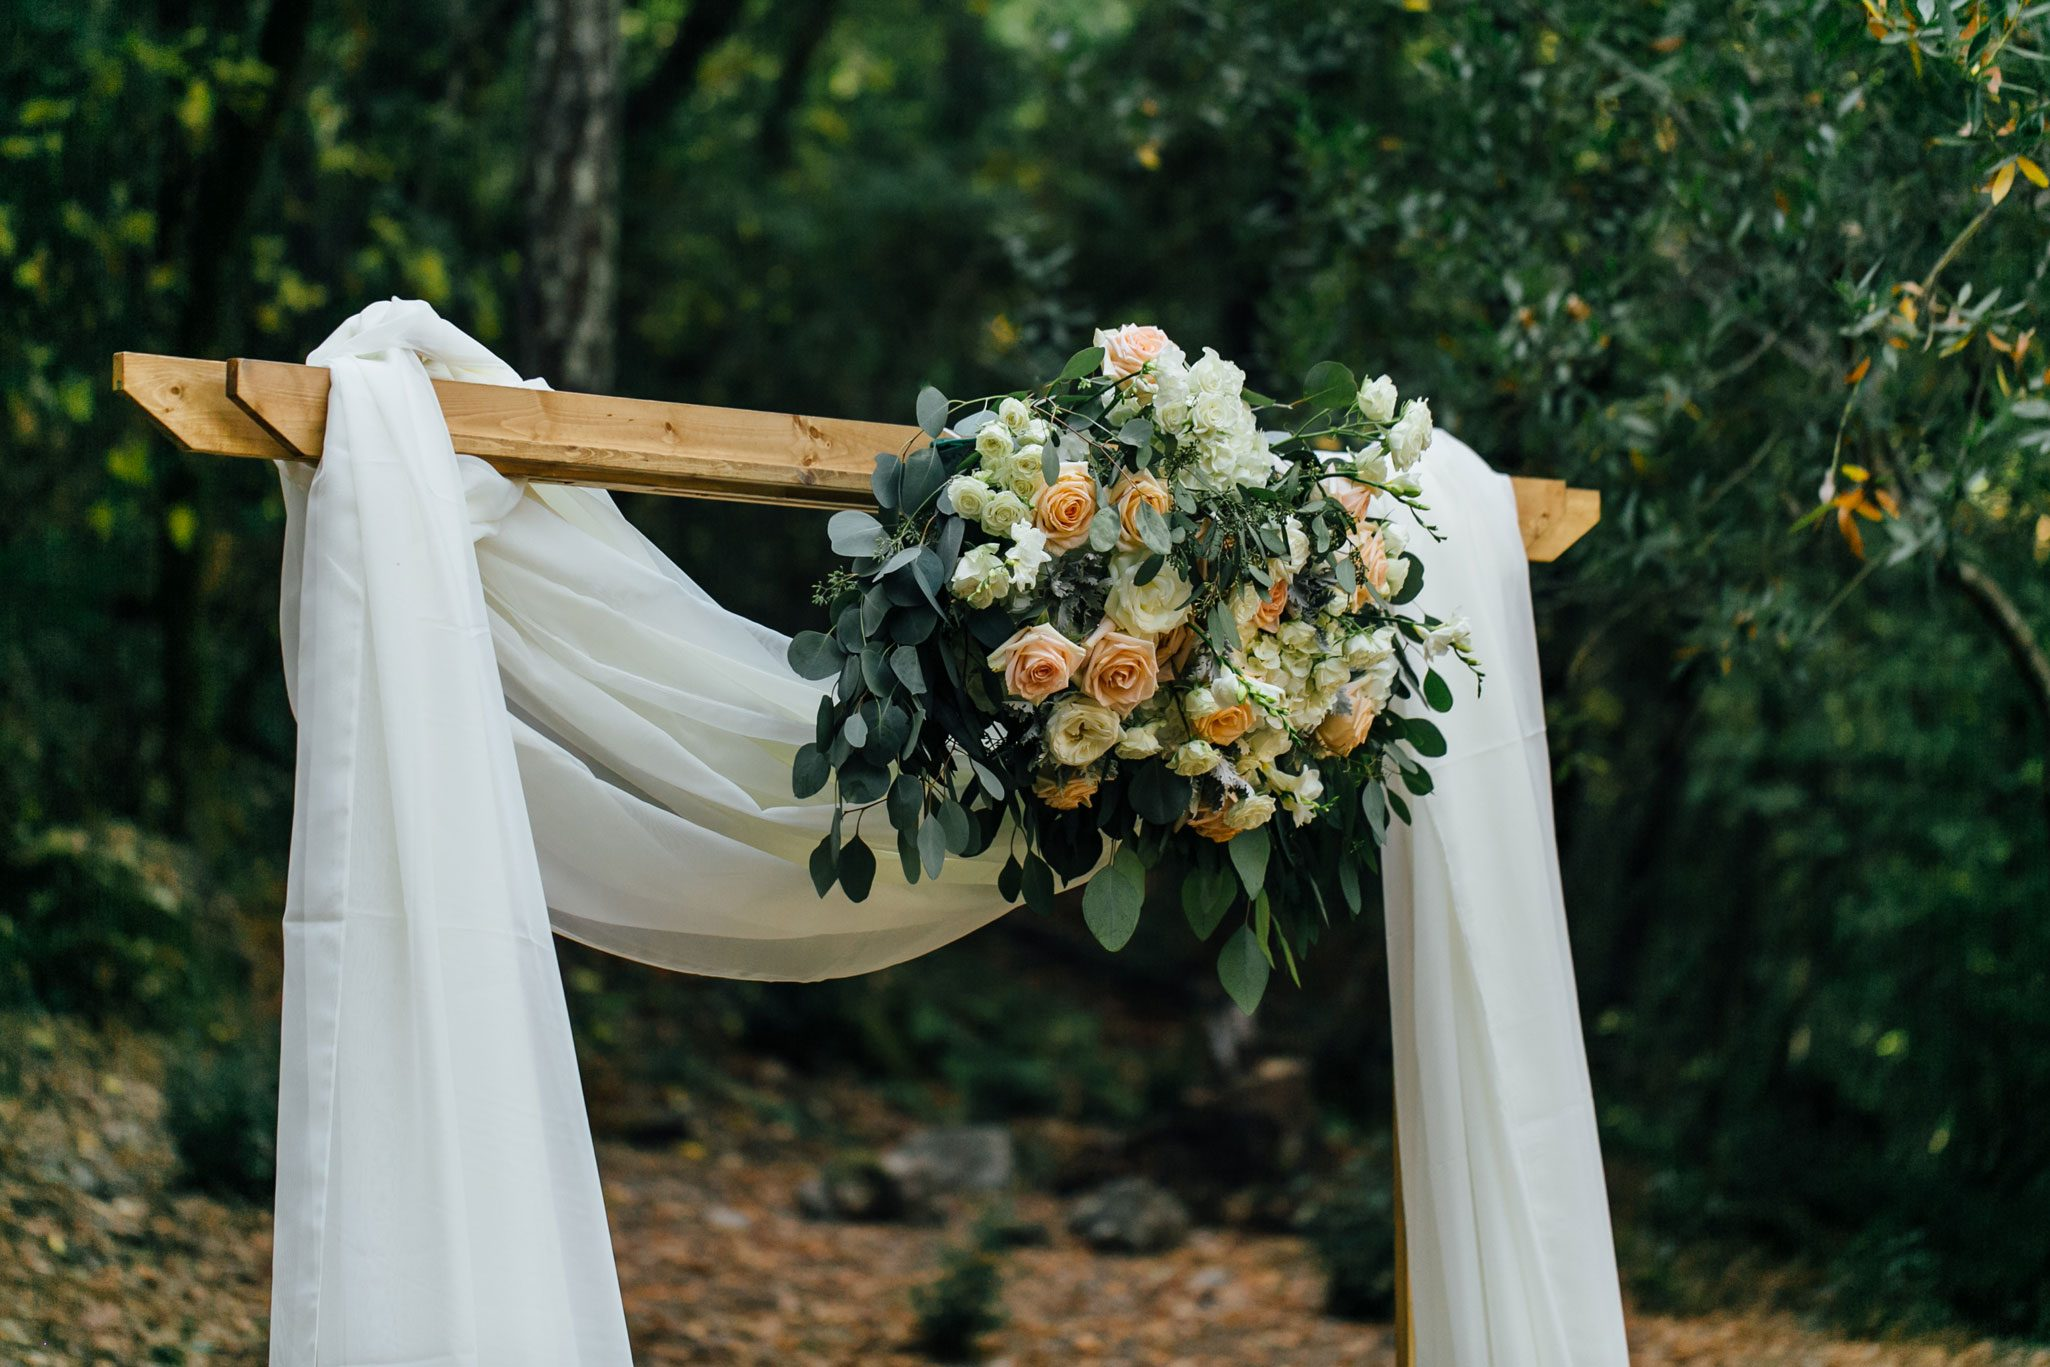 Ceremony floral swag - A Romantic Backyard Wedding in Wine Country, Napa Valley California